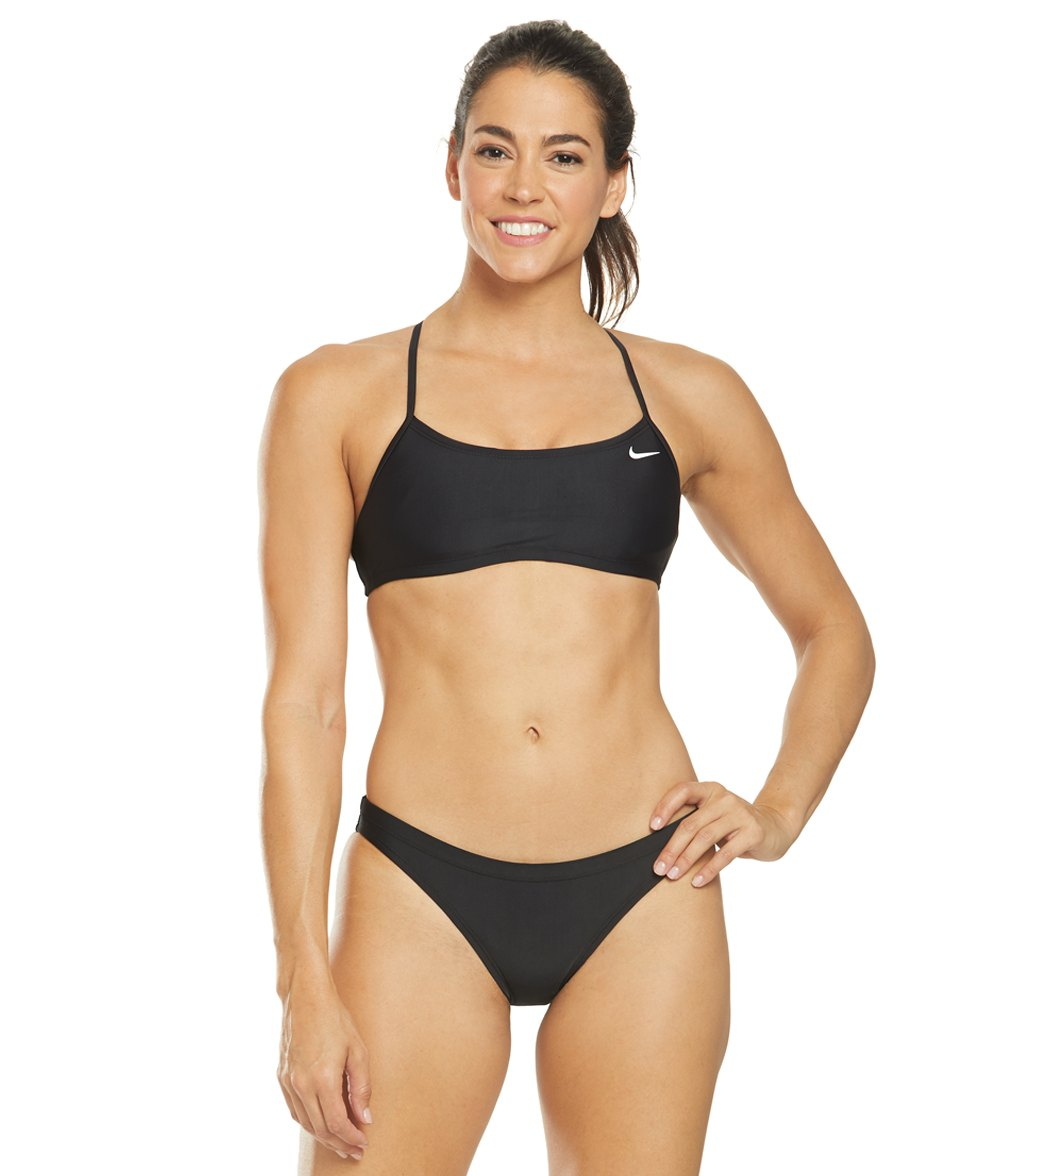 831e409a6b Nike Women s Solid Racerback Bikini Top Set at SwimOutlet.com ...